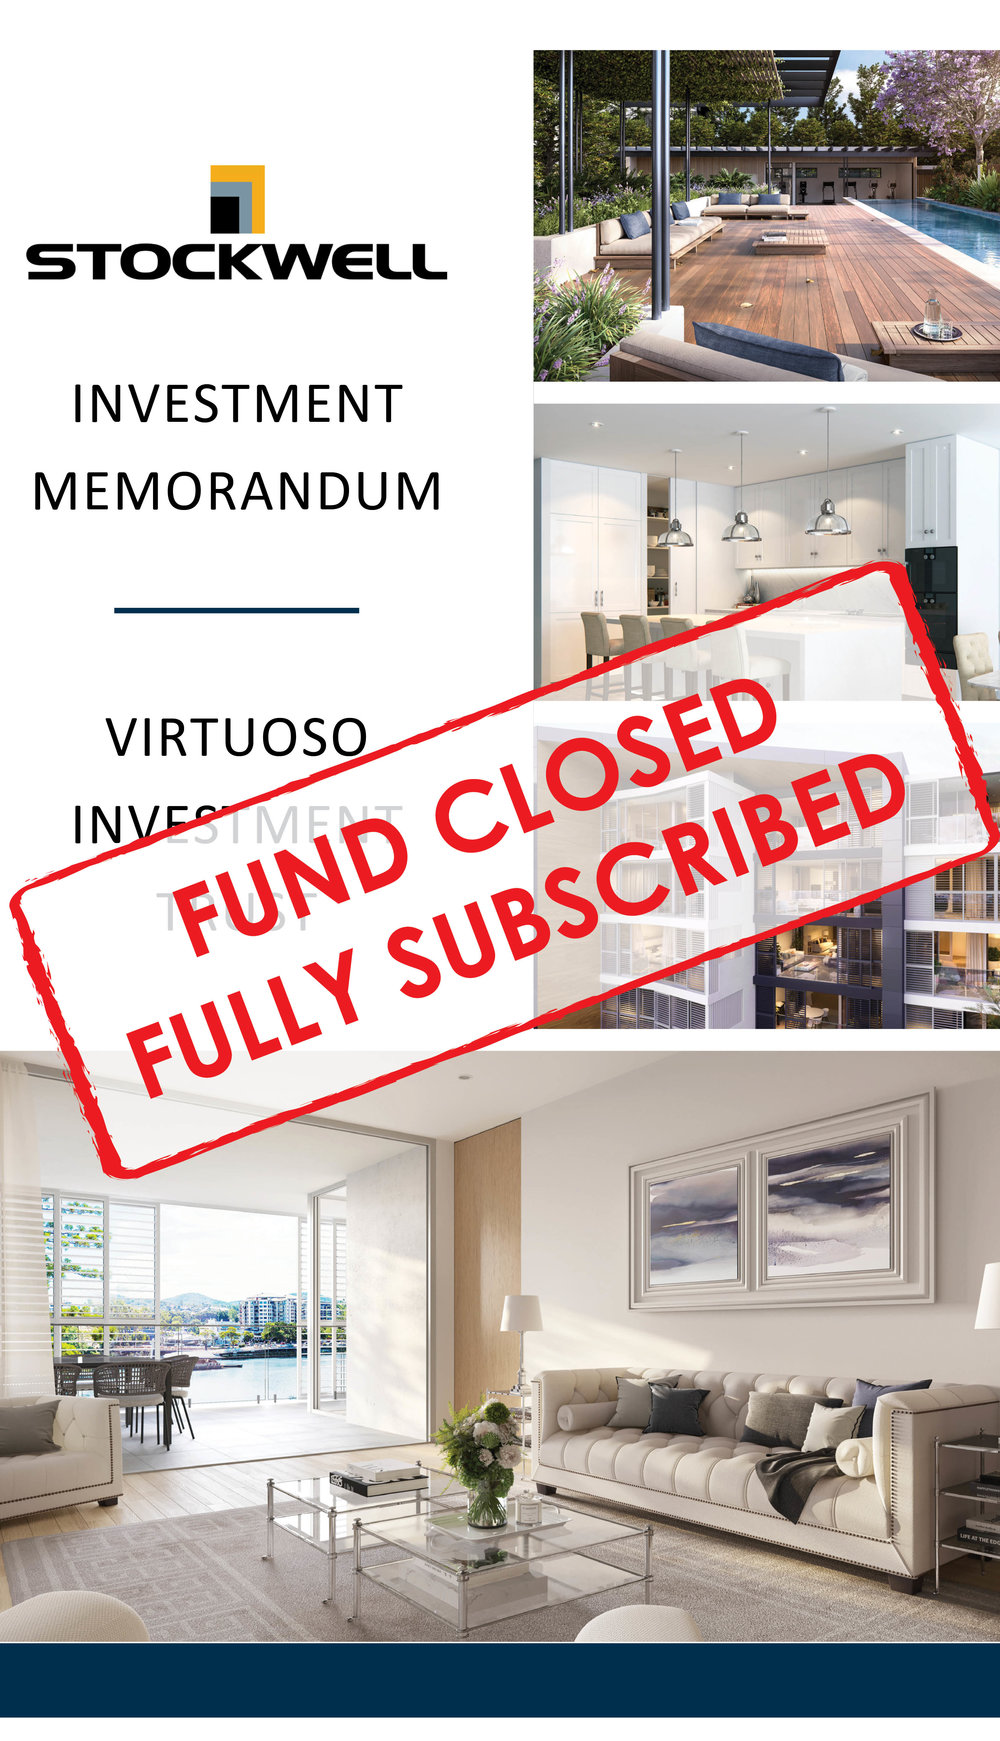 Virtuoso Investment Trust - FULLY SUBSCRIBED